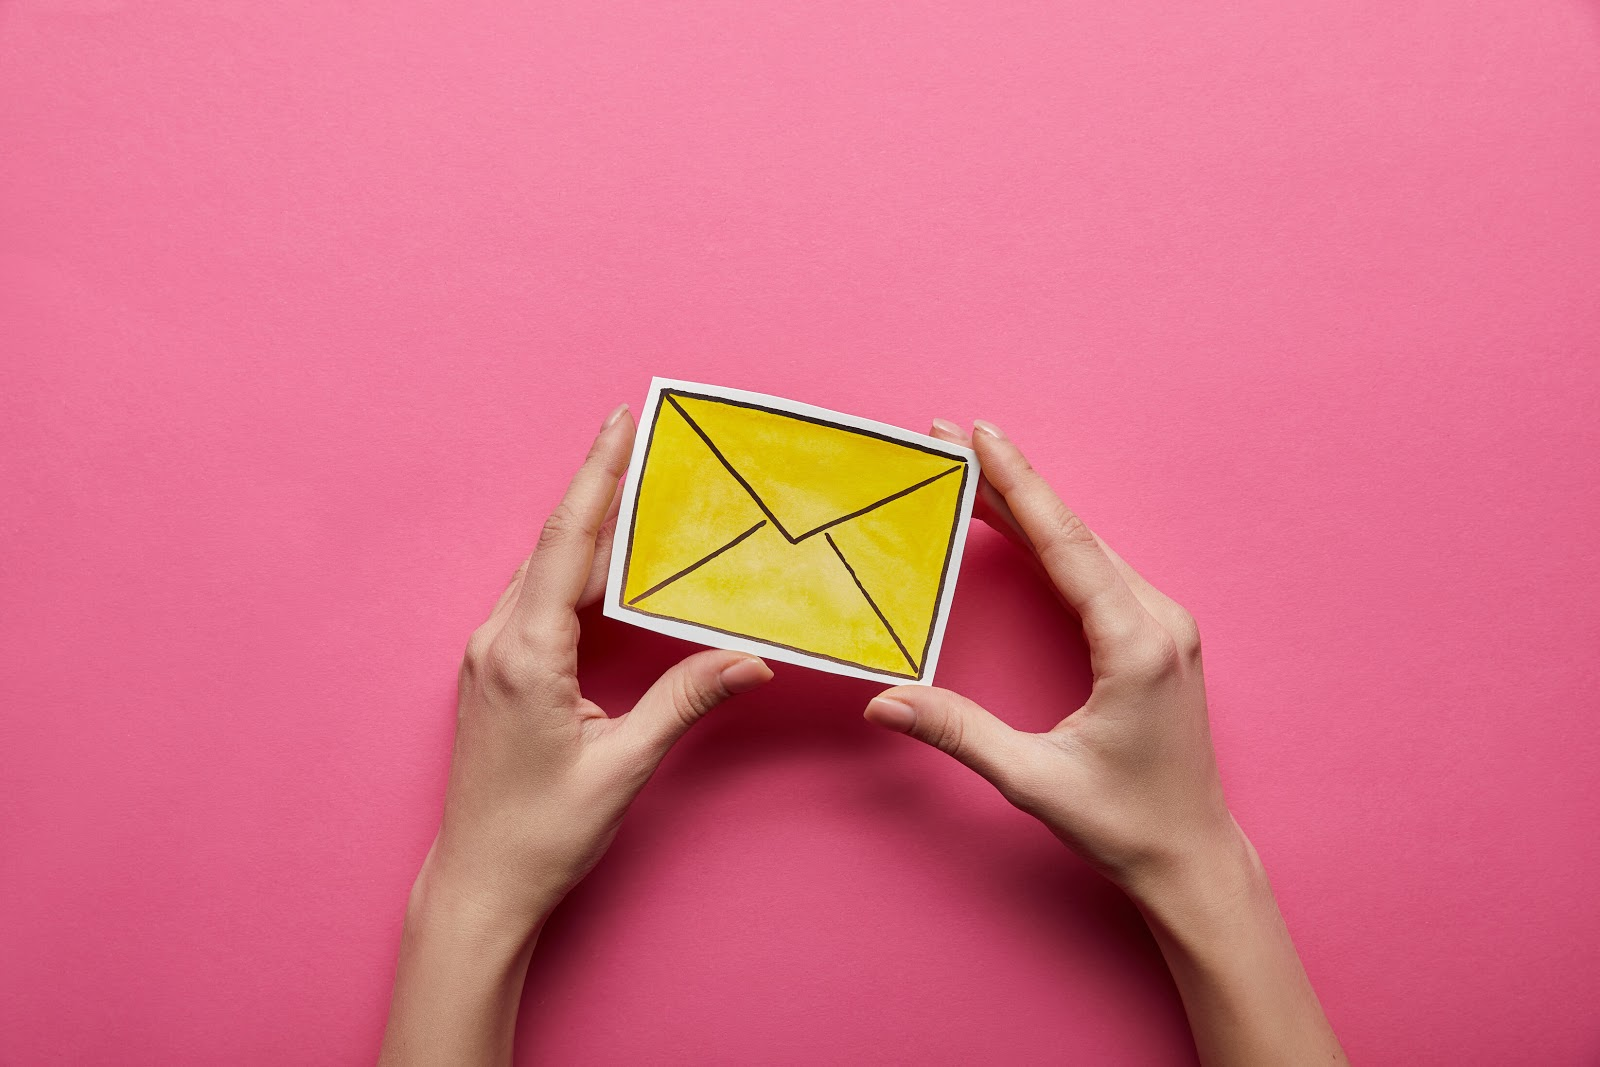 Hands holding illustrated envelope in front of pink background